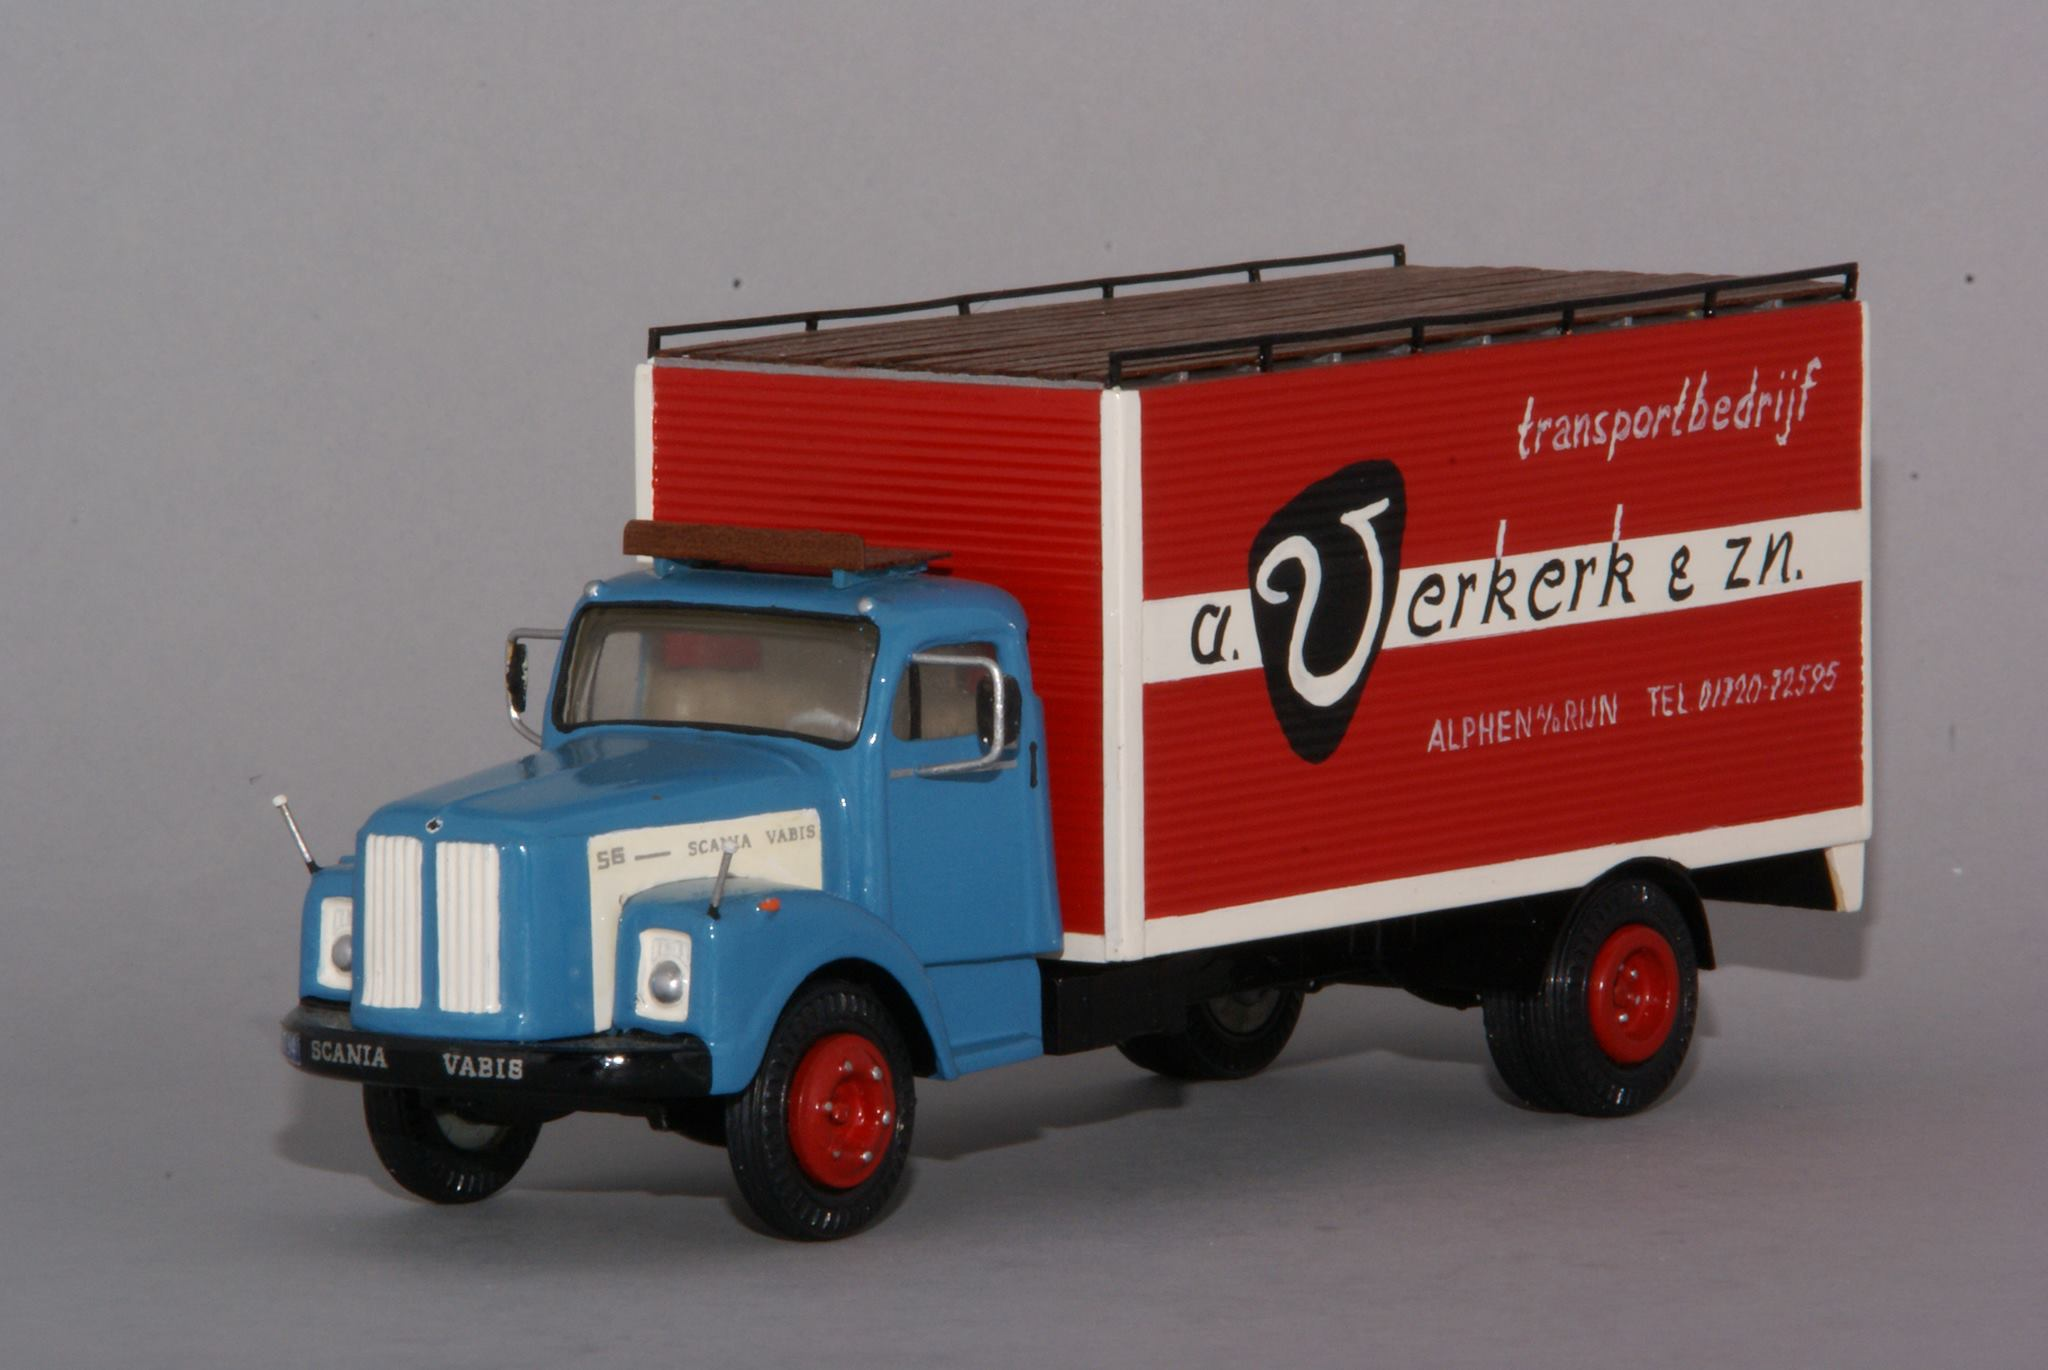 Scania-vabis-56-model--Jan-Houtman